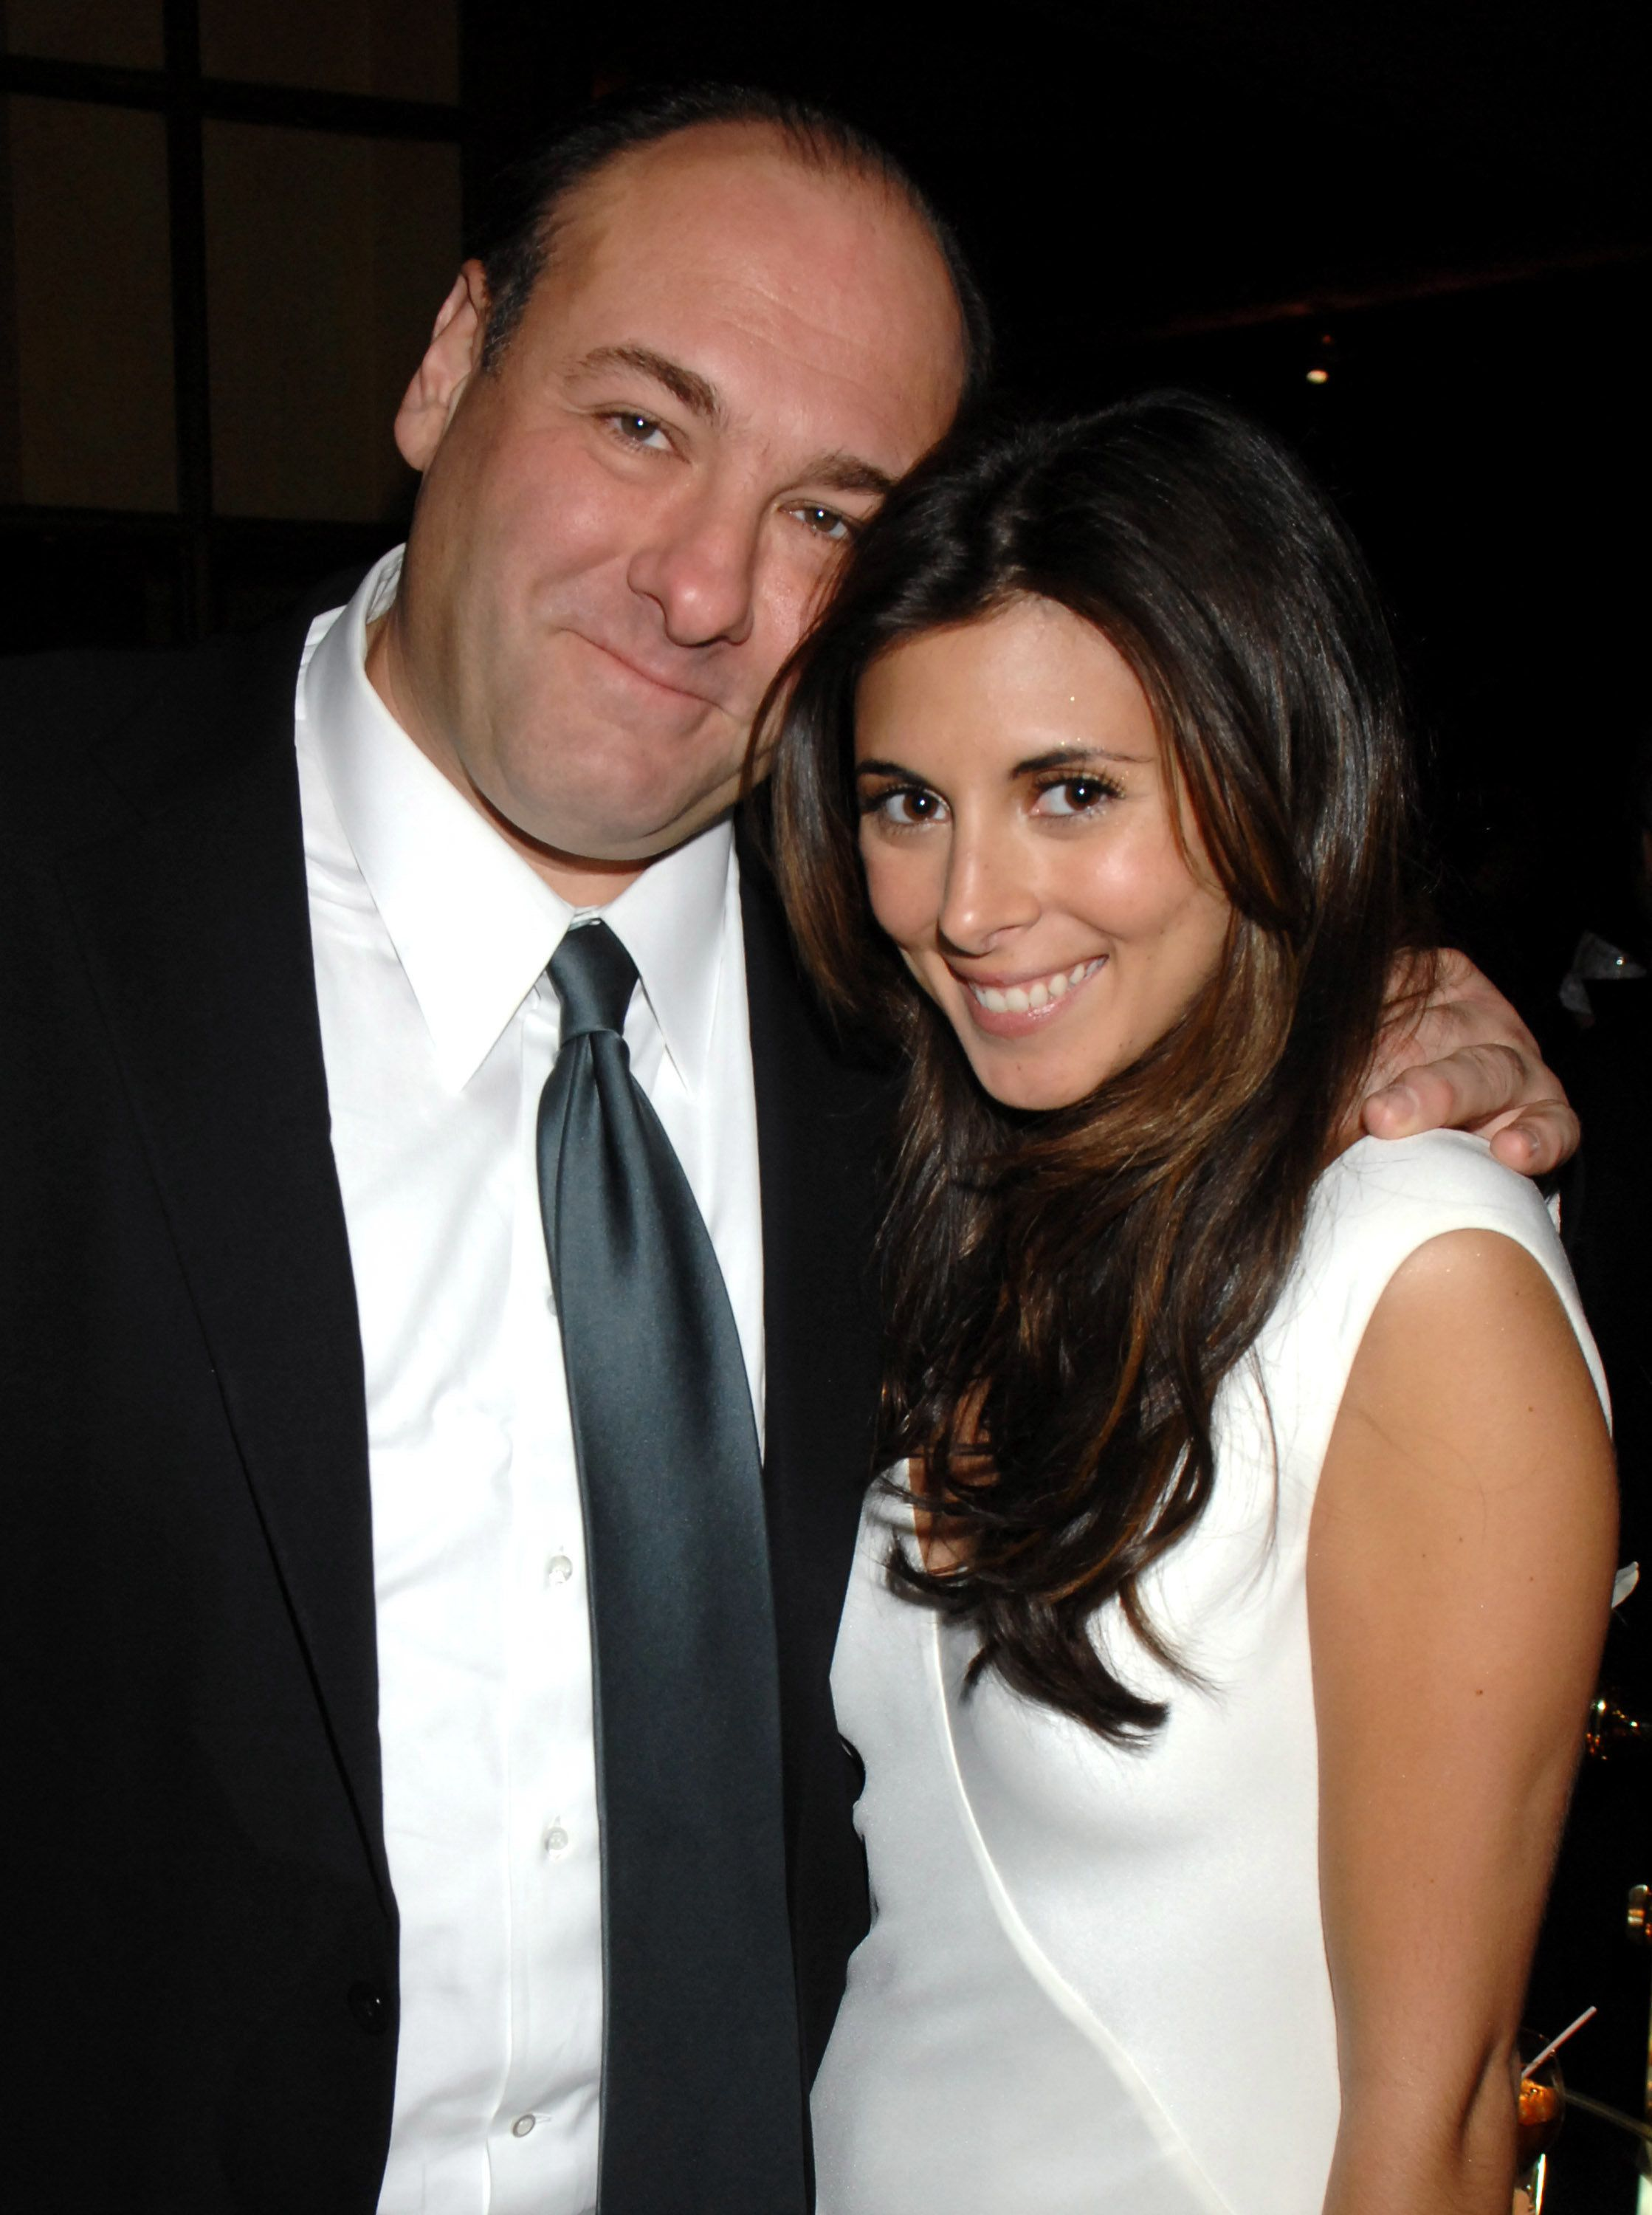 (EXCLUSIVE, Premium Rates Apply) James Gandolfini and Jamie-Lynn Sigler  *EXCLUSIVE* (Photo by Jeff Kravitz/FilmMagic)